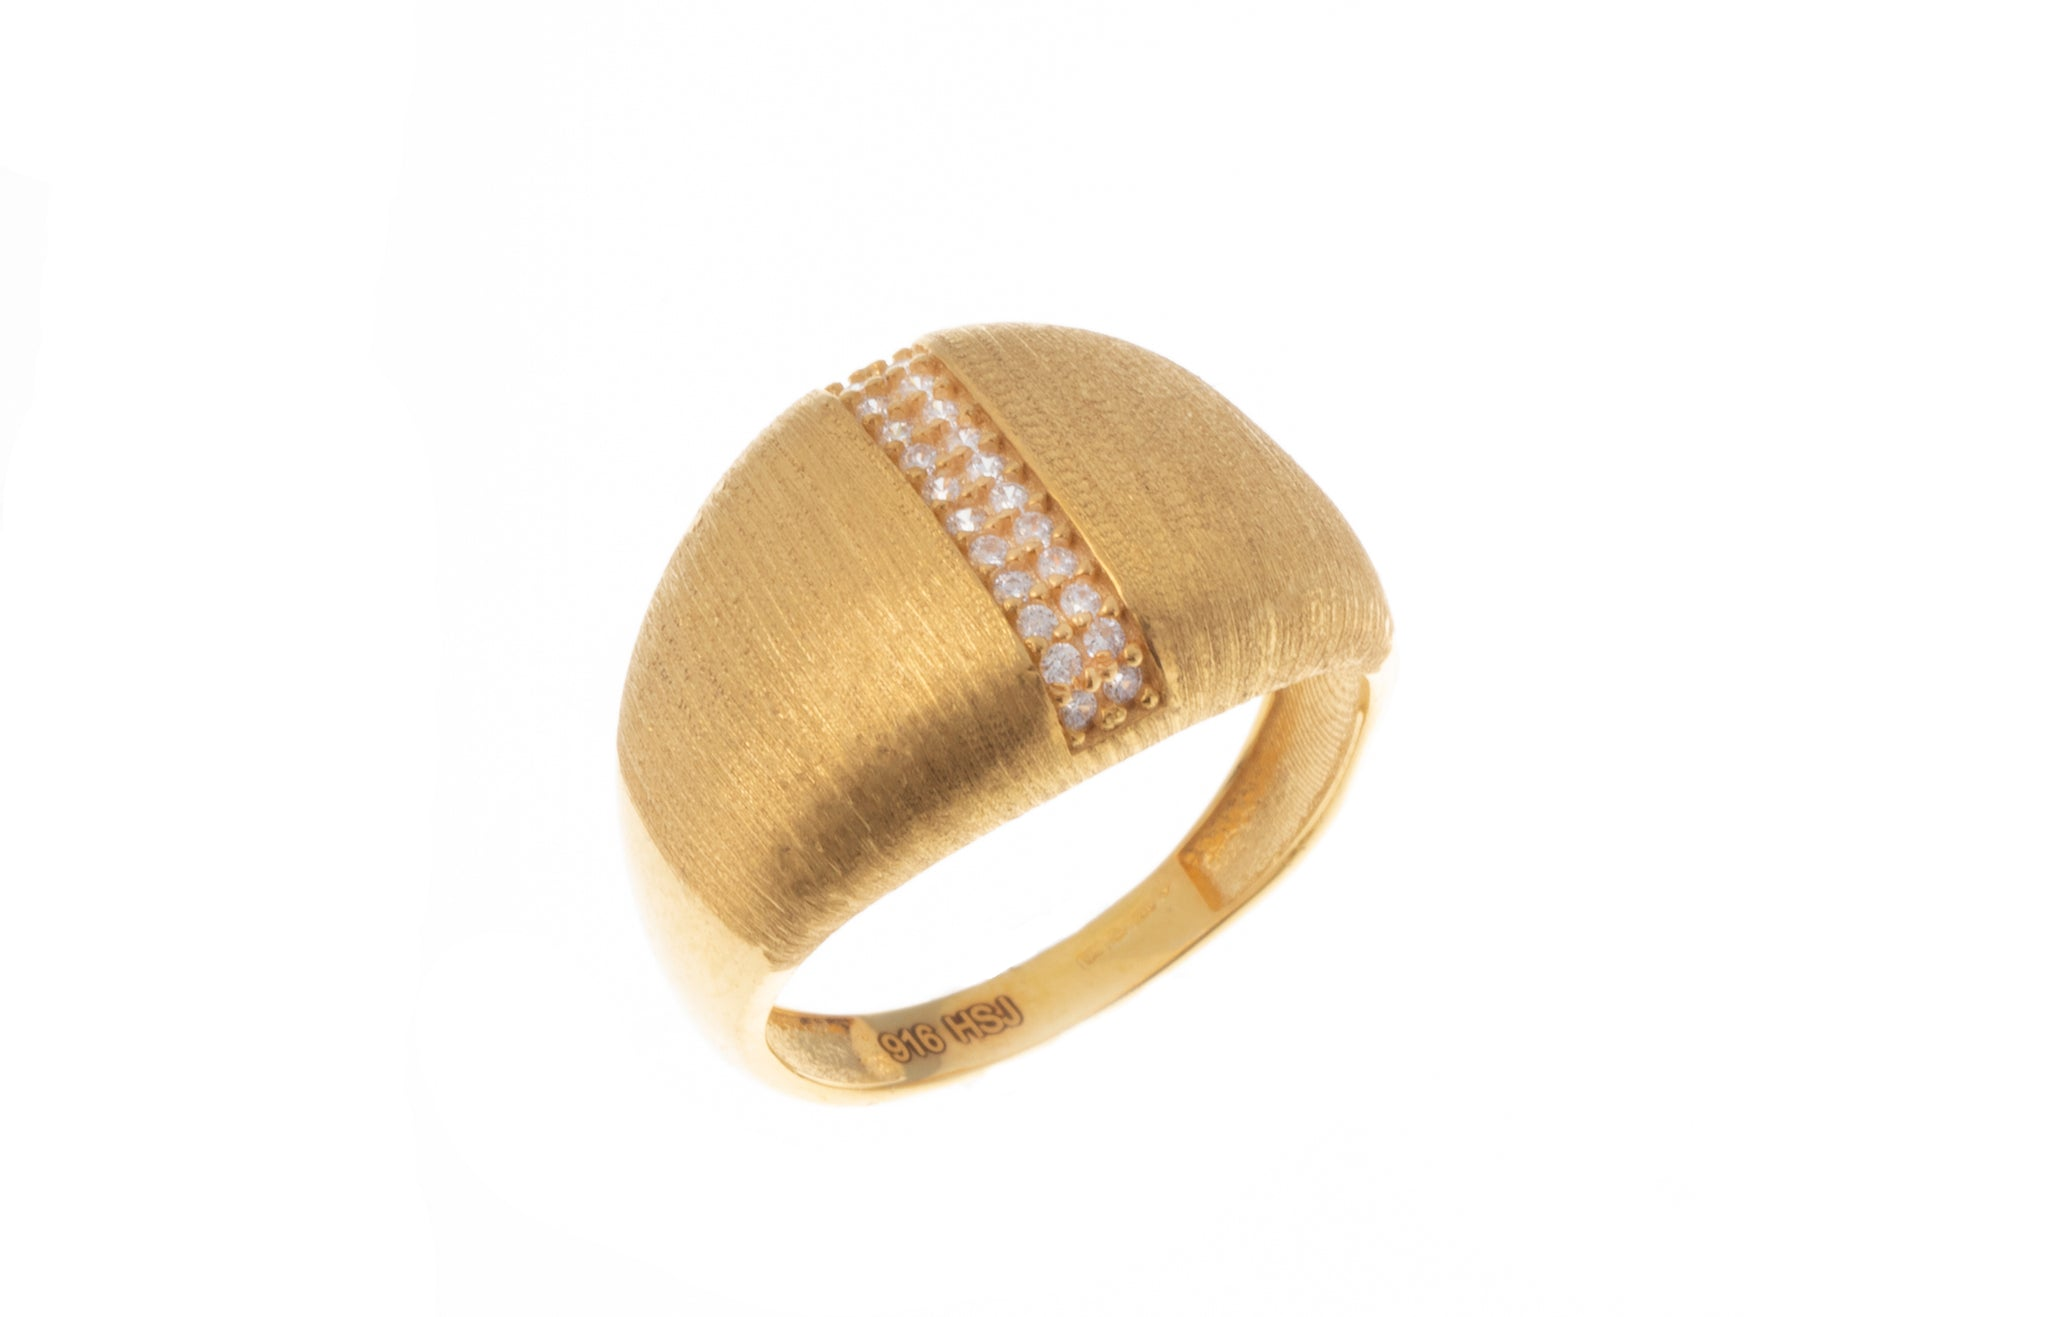 22ct Gold Cubic Zirconia Dress Ring with Satin Finish (4.5g) LR-7350